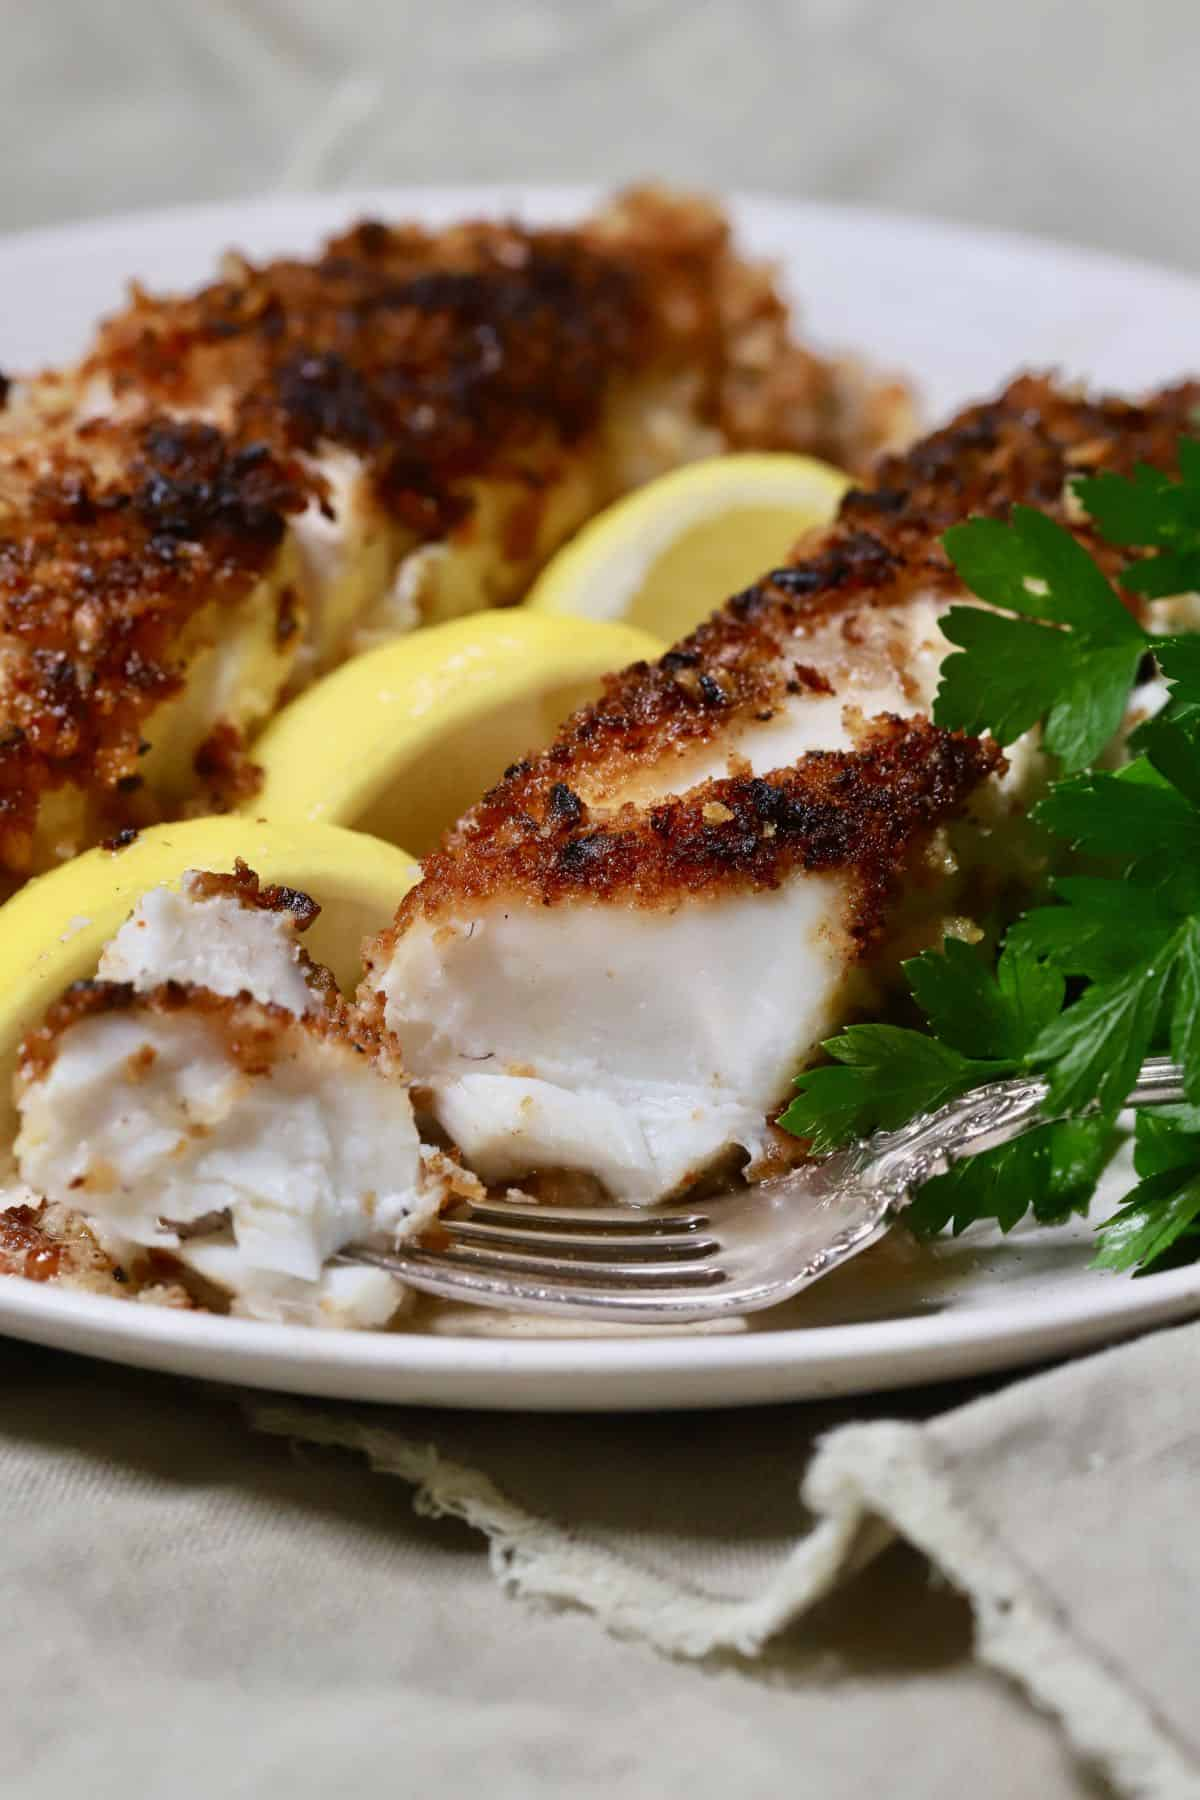 Two fish fillets coated with pecans and panko on a plate.